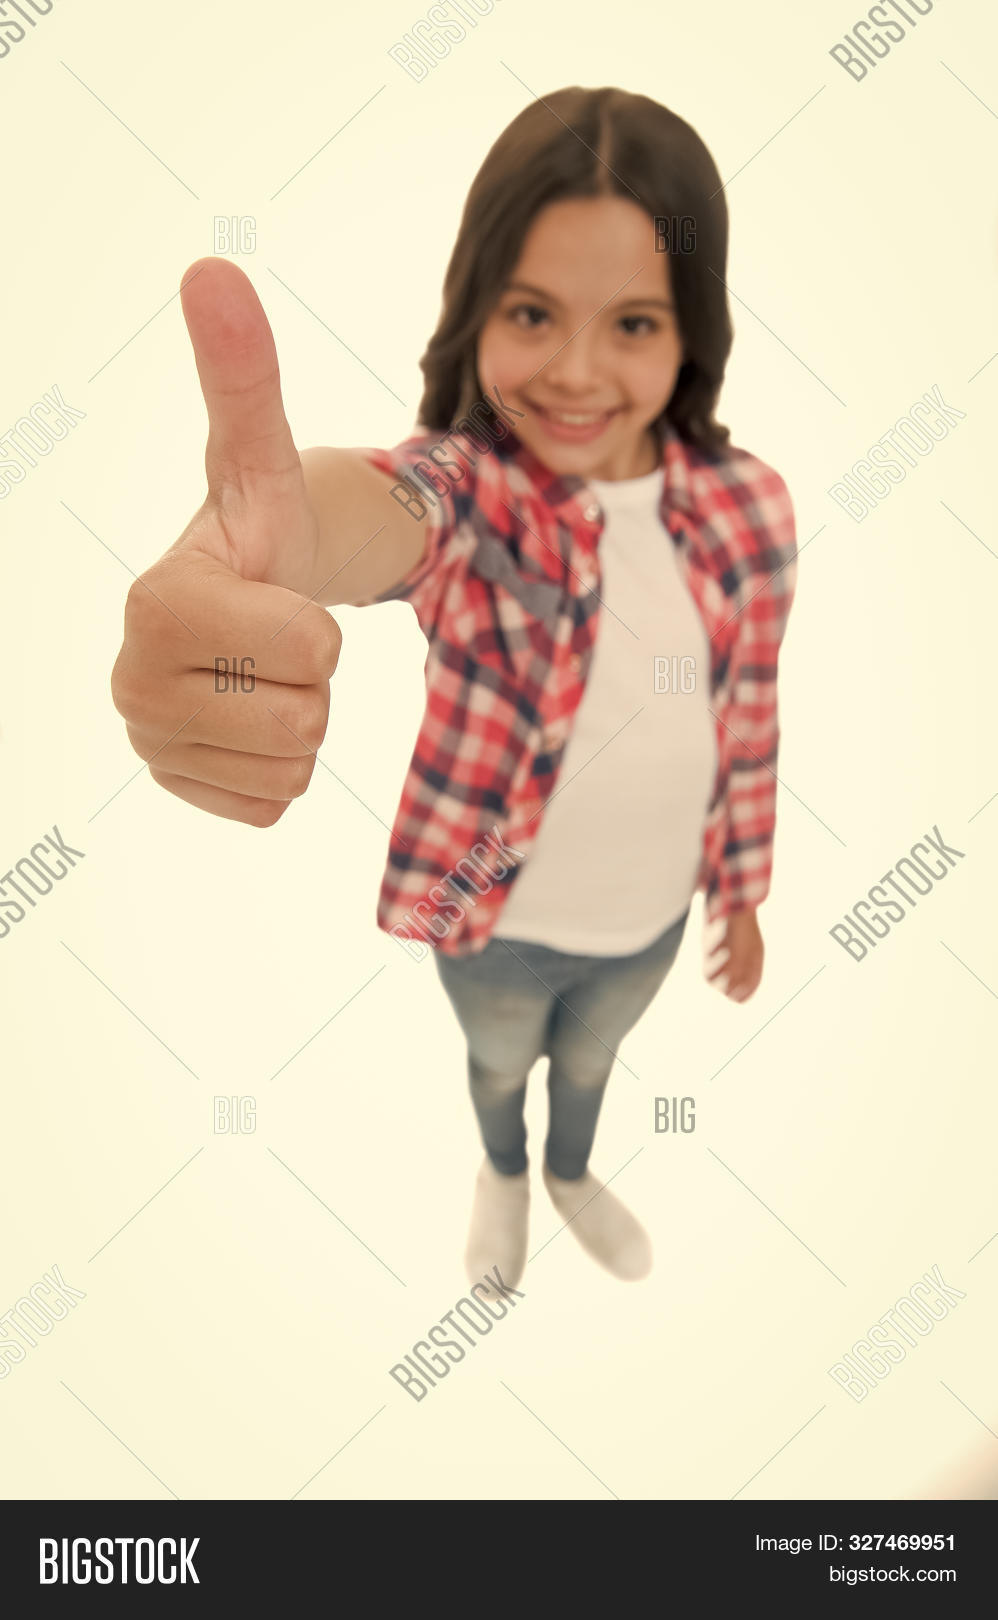 Kid girl long curly hair posing confidently. Girl smiling face feels confident. Child confidently showing thumbs up. Upbringing confidence concept. Feel so confident with parental support. I like it.